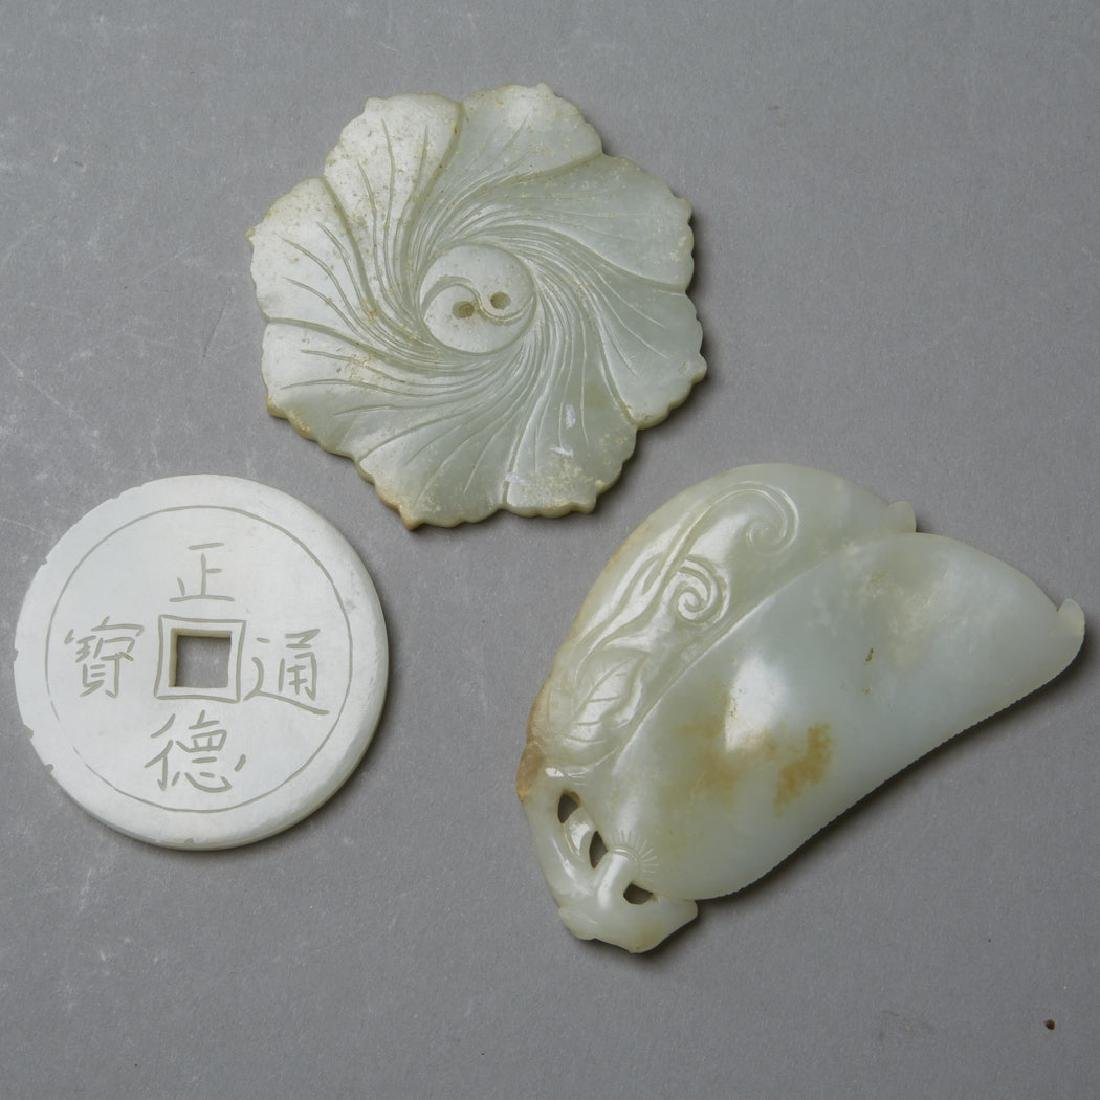 3: Chinese 19th C. Celadon Jade Pendants Carvings